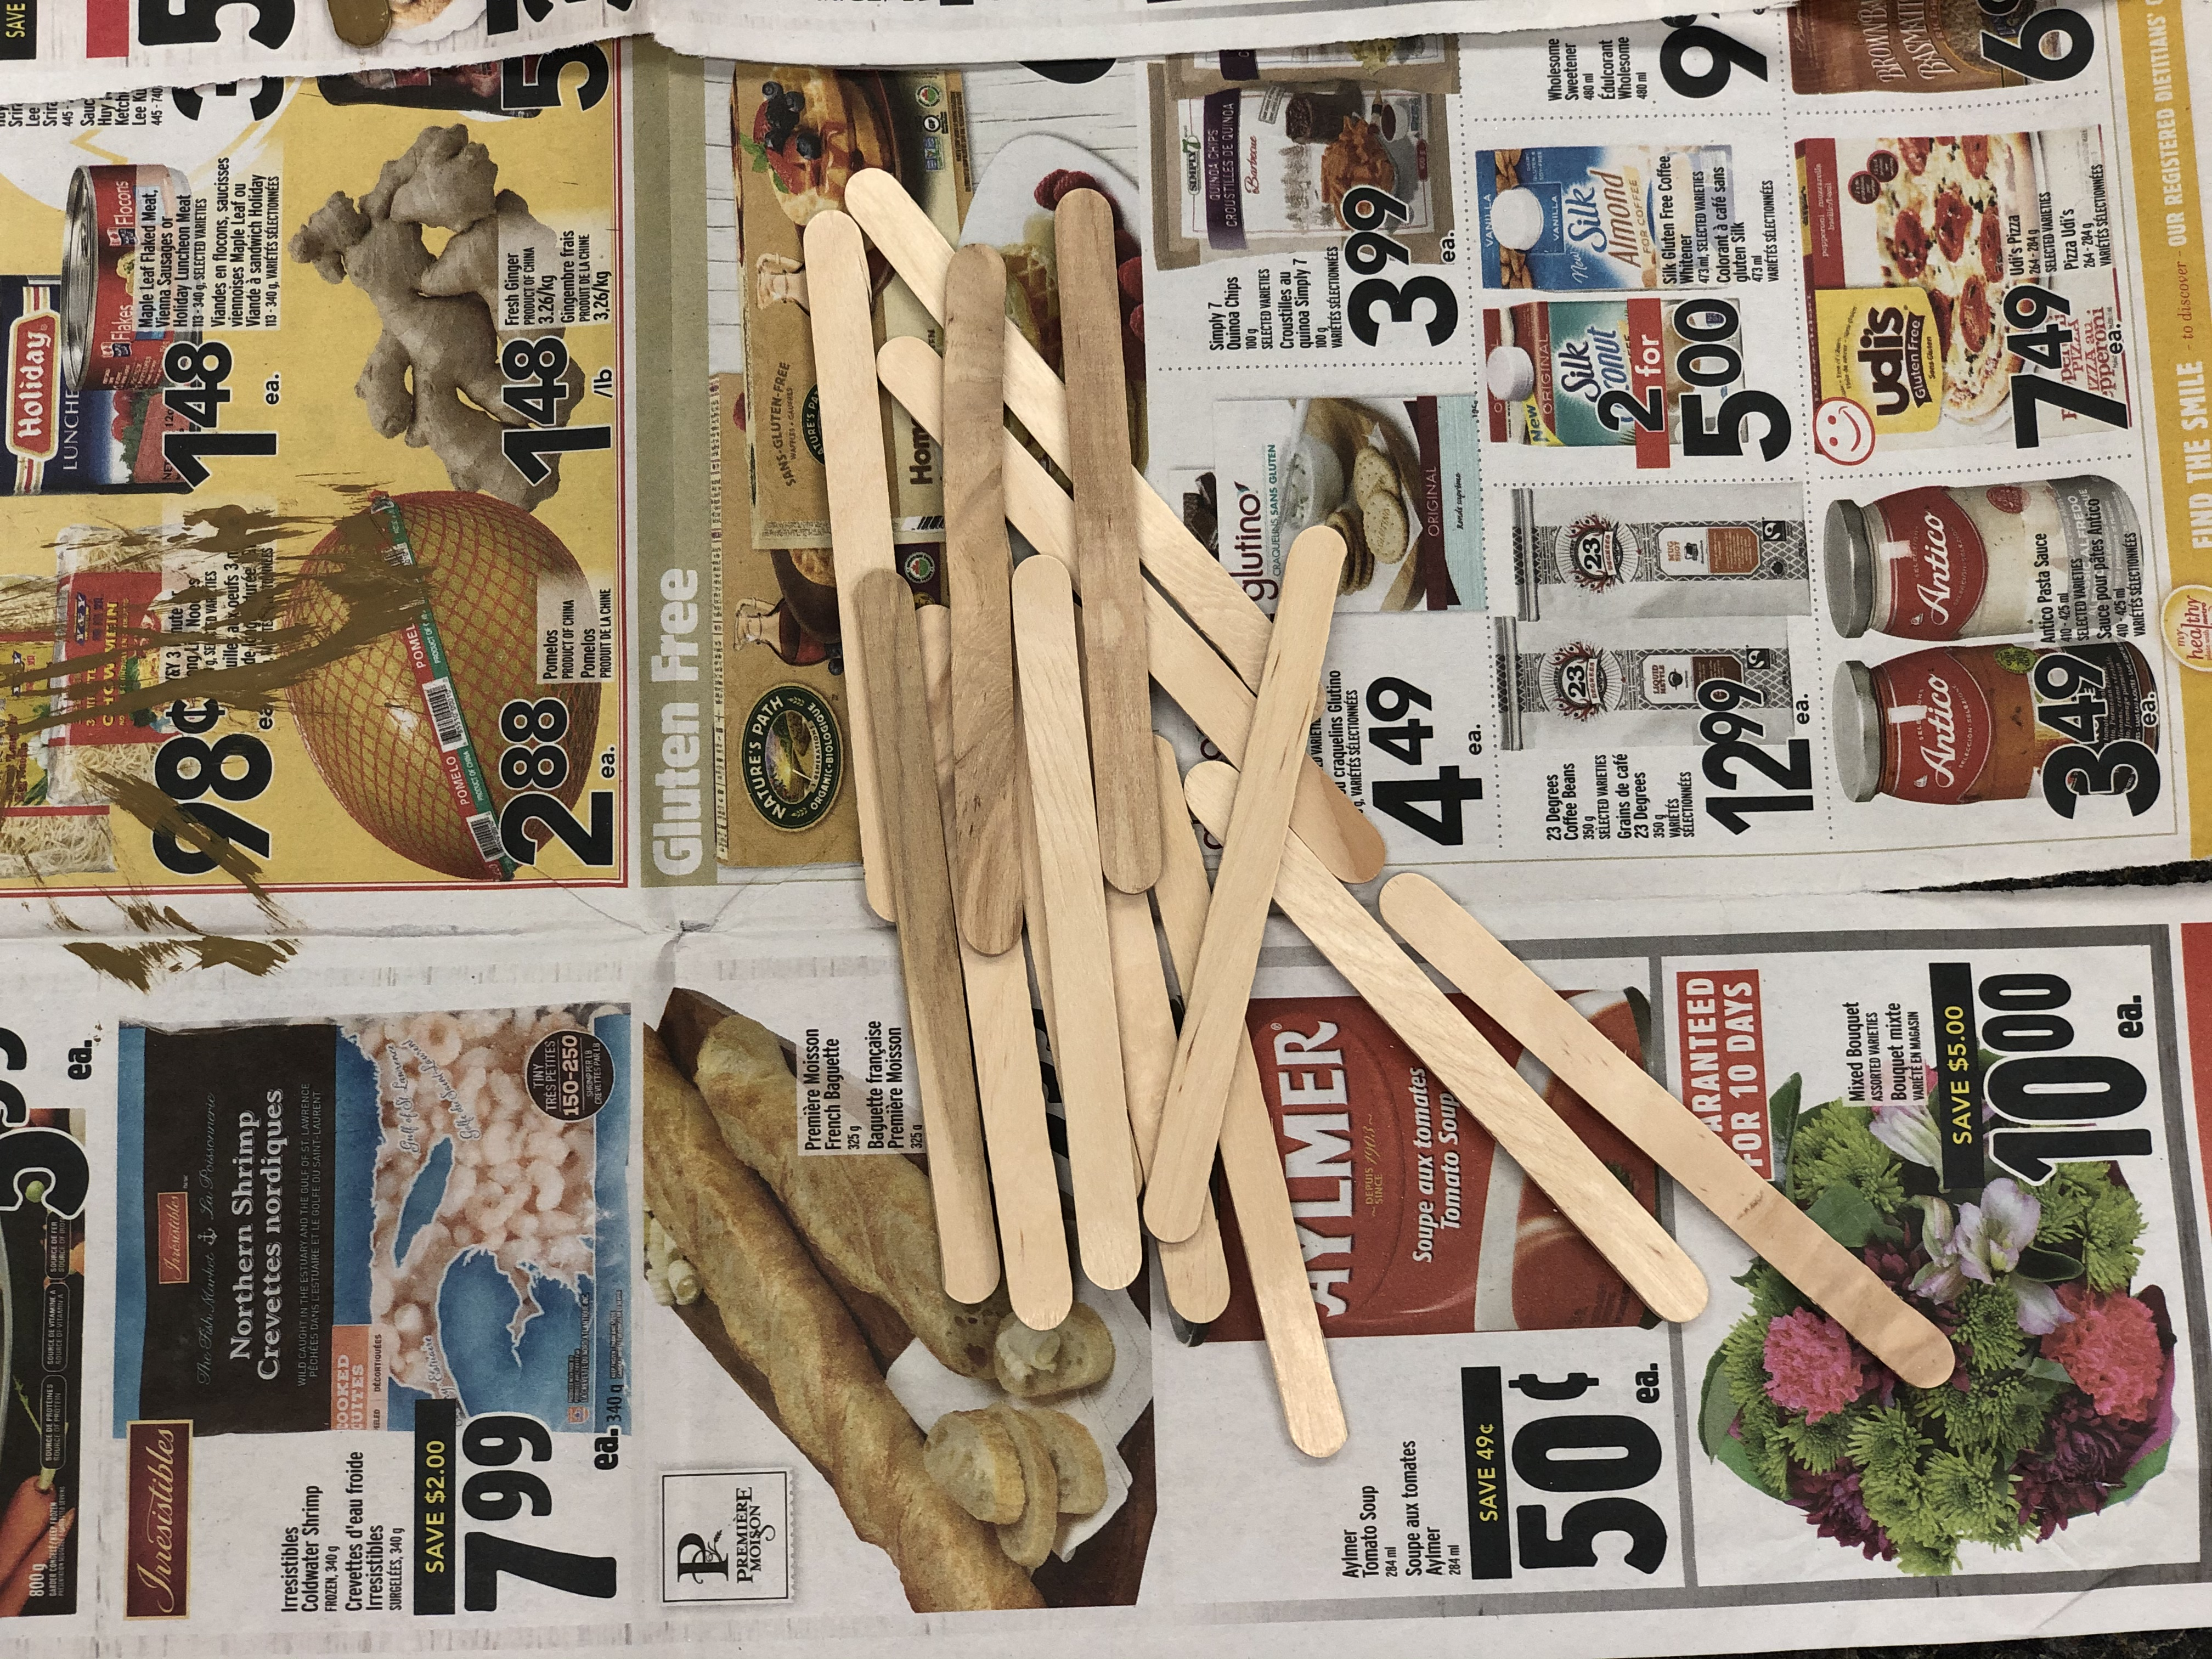 20 popsicle sticks layed out on newspaper before painting